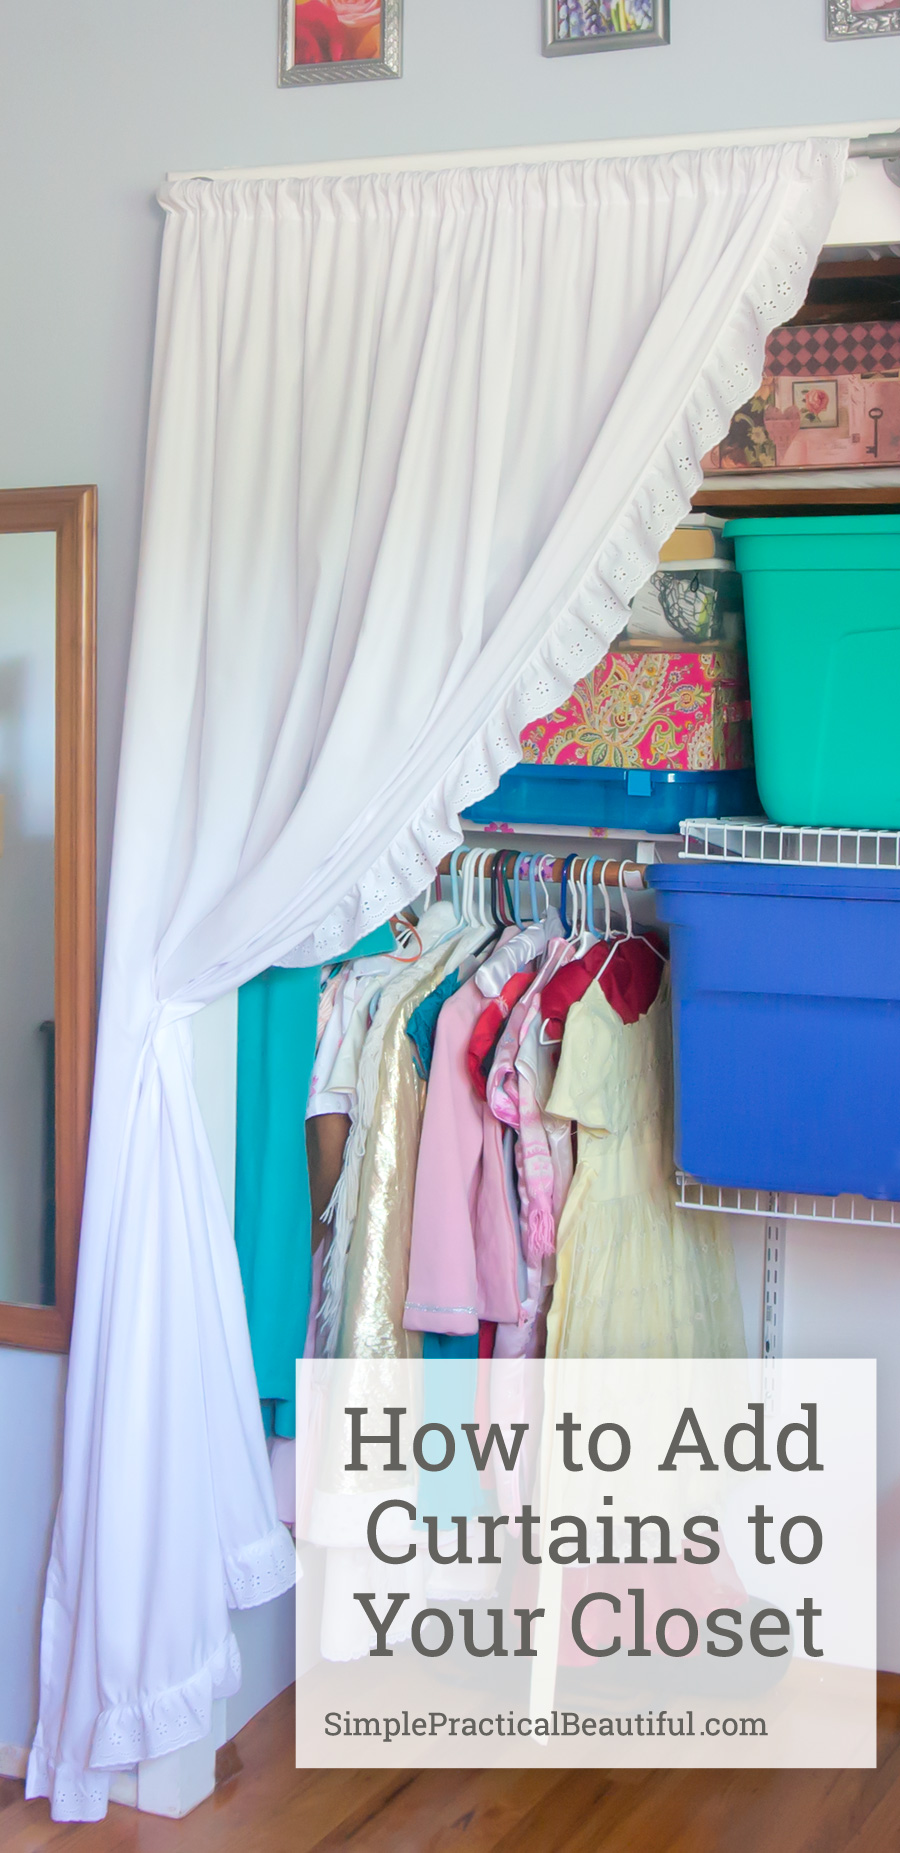 How to make simple closet curtains from sheets.